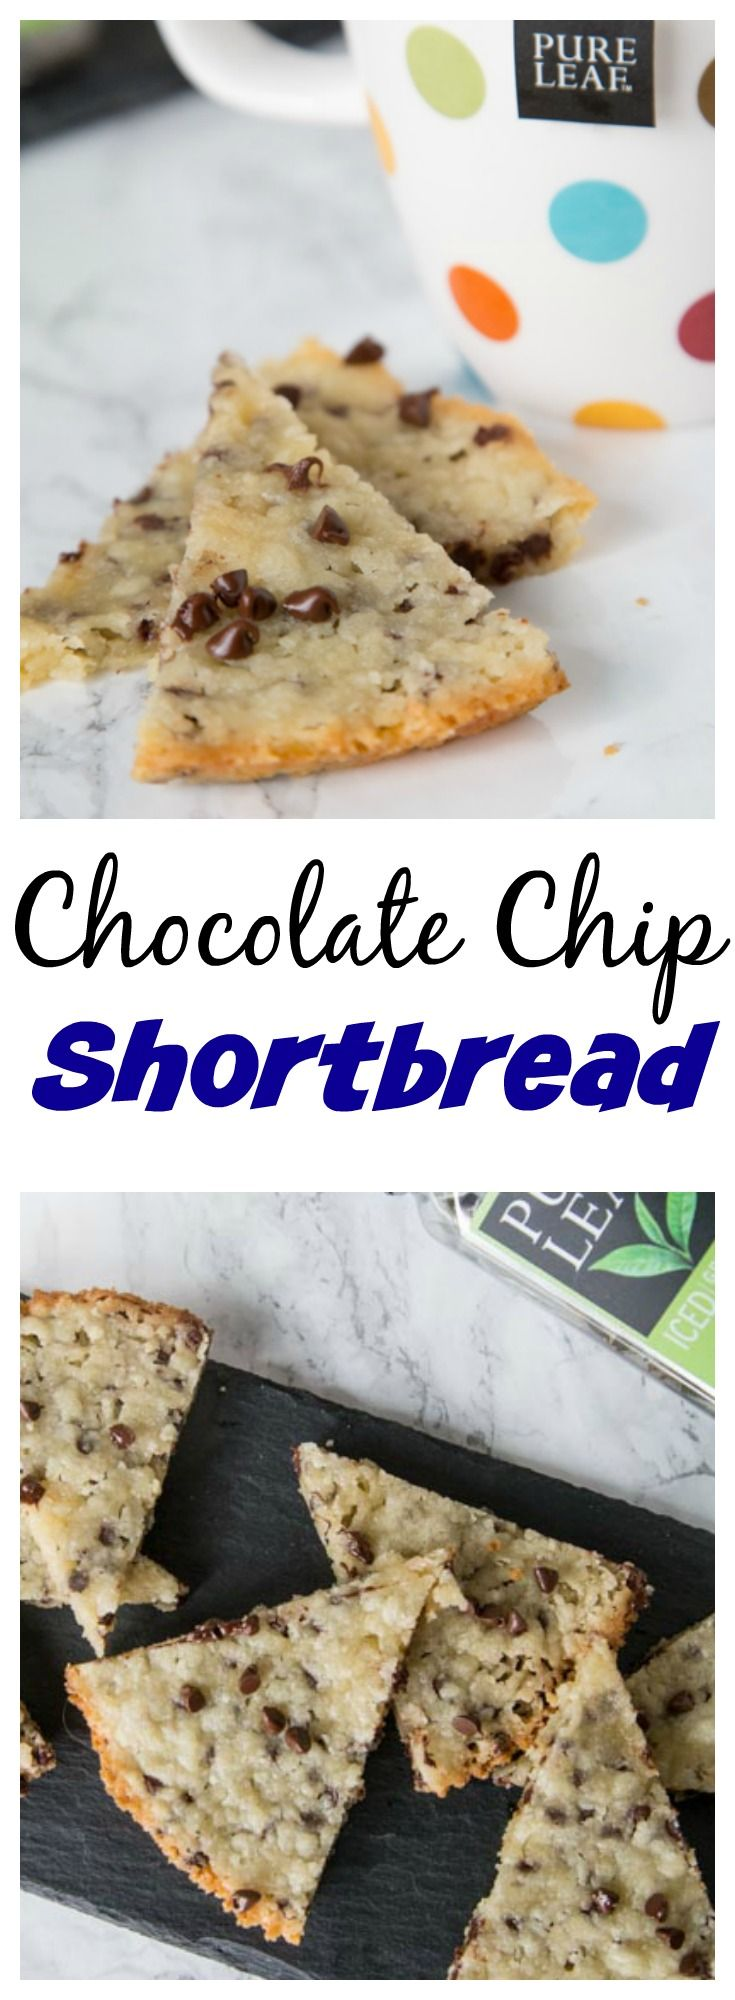 Chocolate Chip Shortbread – buttery shortbread with lots of chocolate chips. Just a few ingredients and so easy to make! Perfect for a holiday baking tray or a cup of tea!